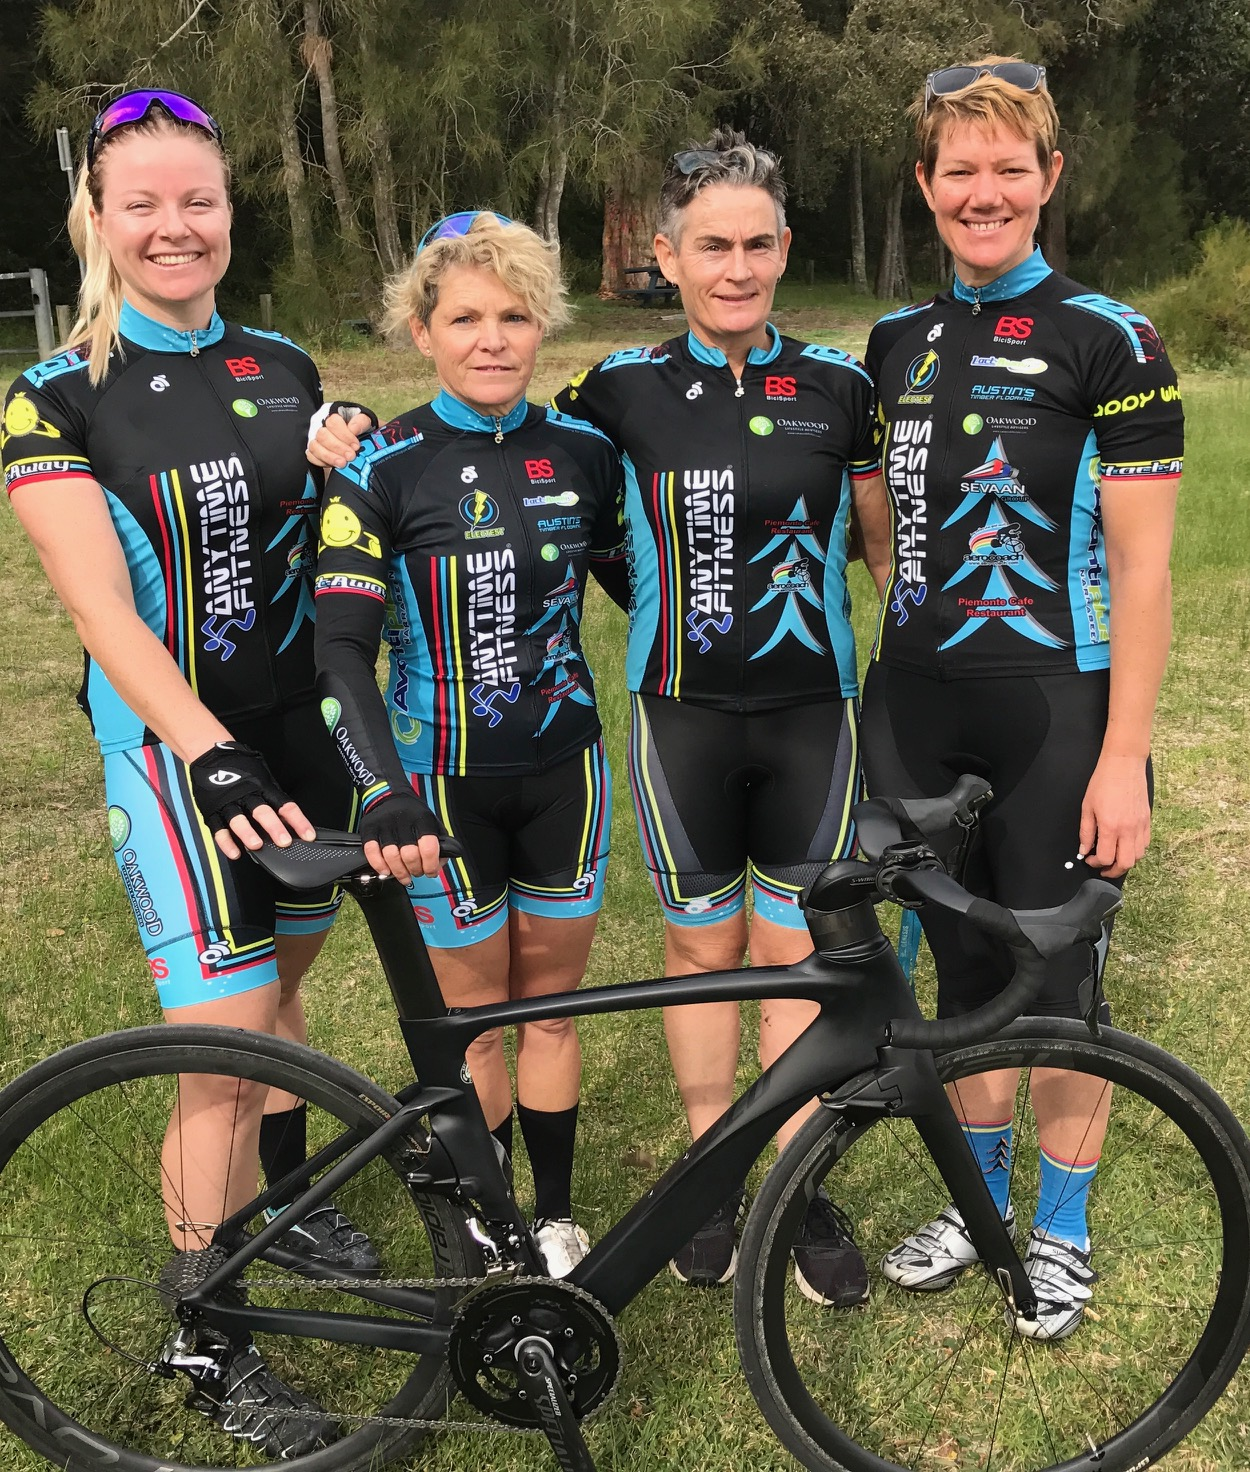 NSW Masters Team Time Trial Championships at Nowra July 17 - Amber Walsh, Sue Preeto, Kirsty Flanagan & Ruth Strapp